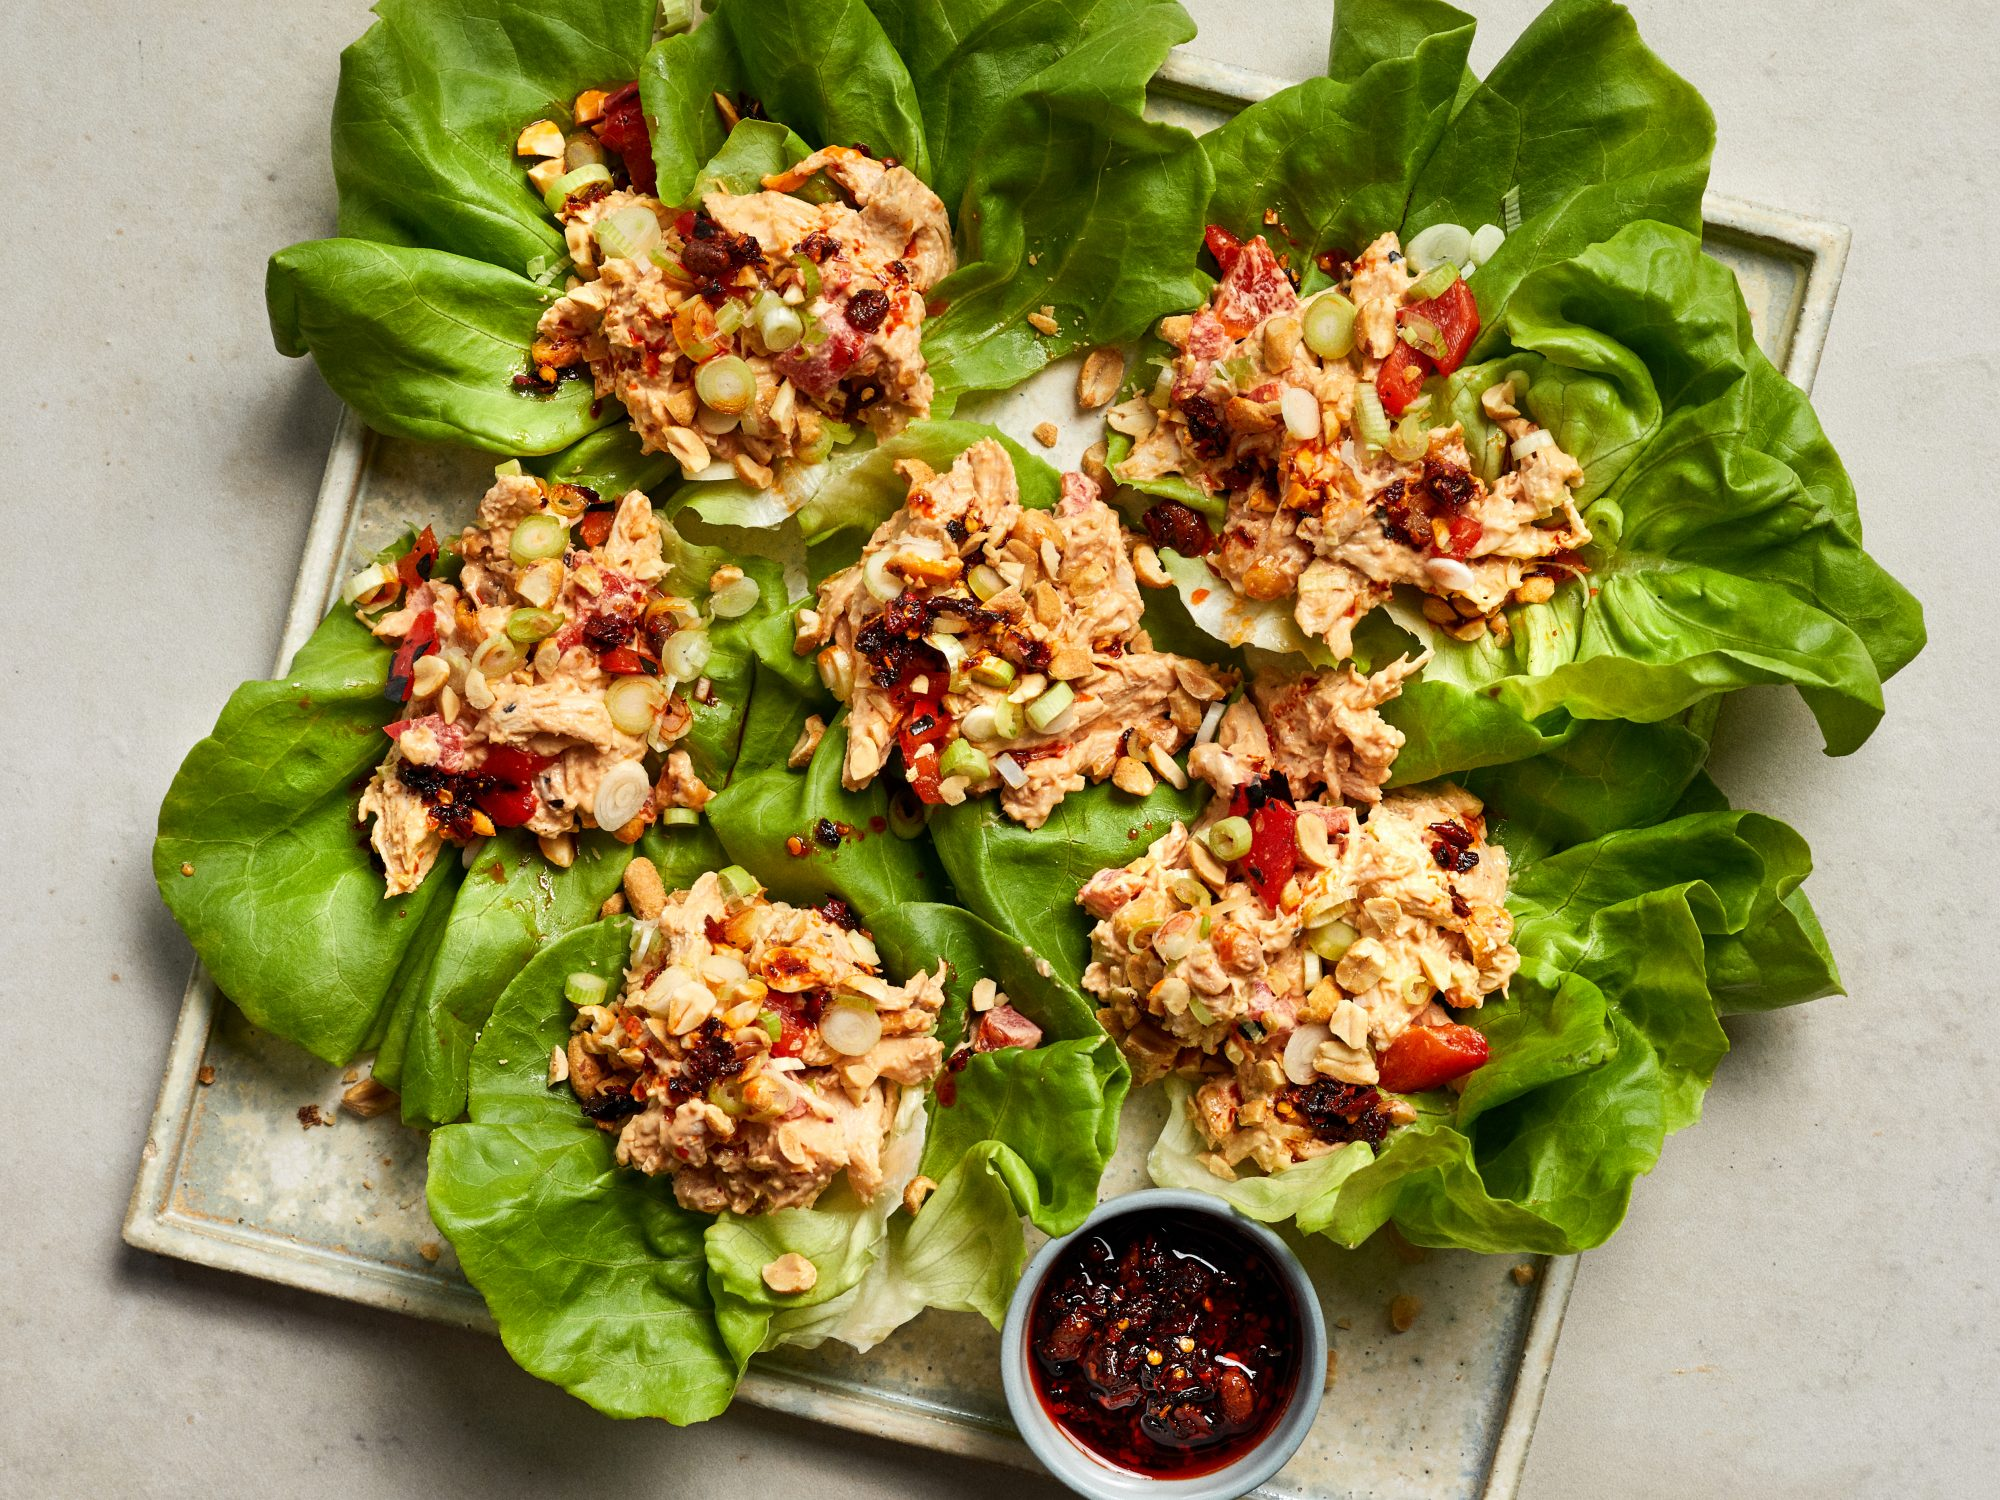 Lettuce Wraps Are the Farmers' Market Dinner That Practically Makes Itself